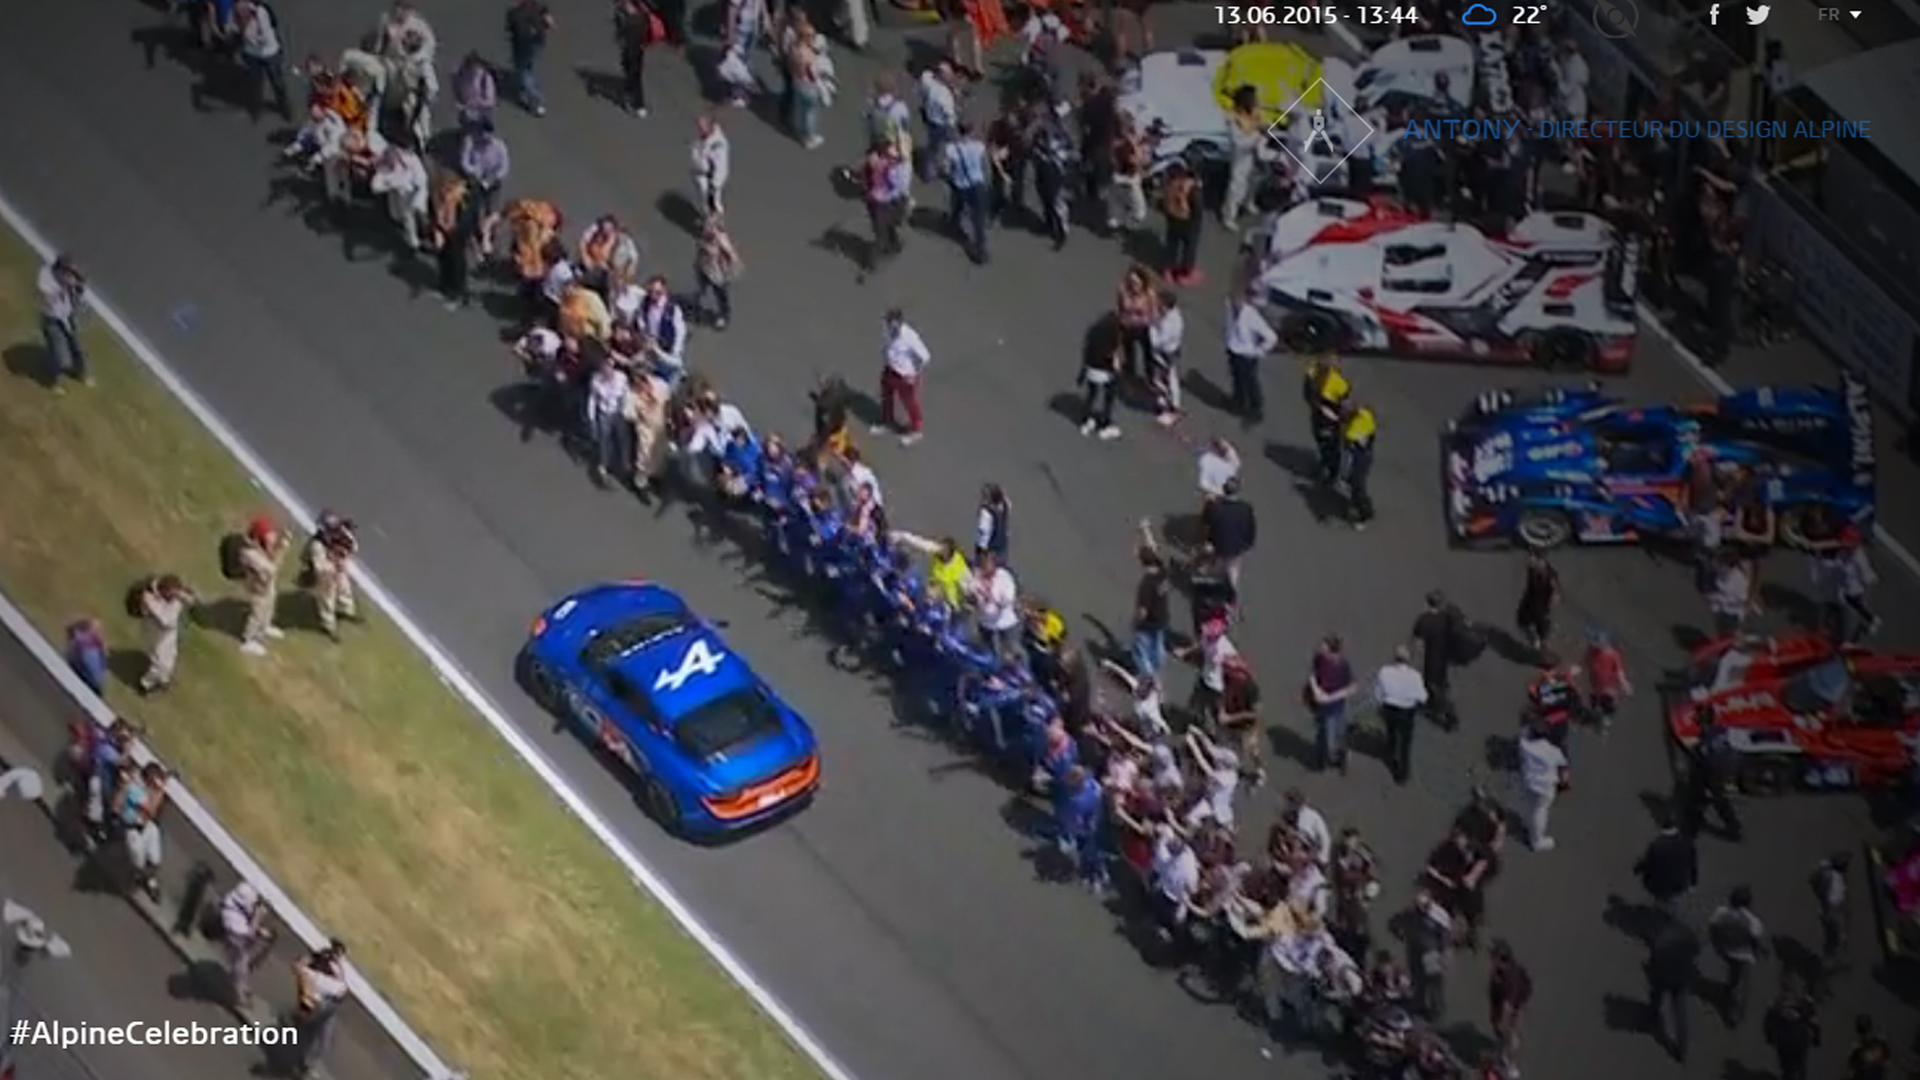 Alpine grid #LM24